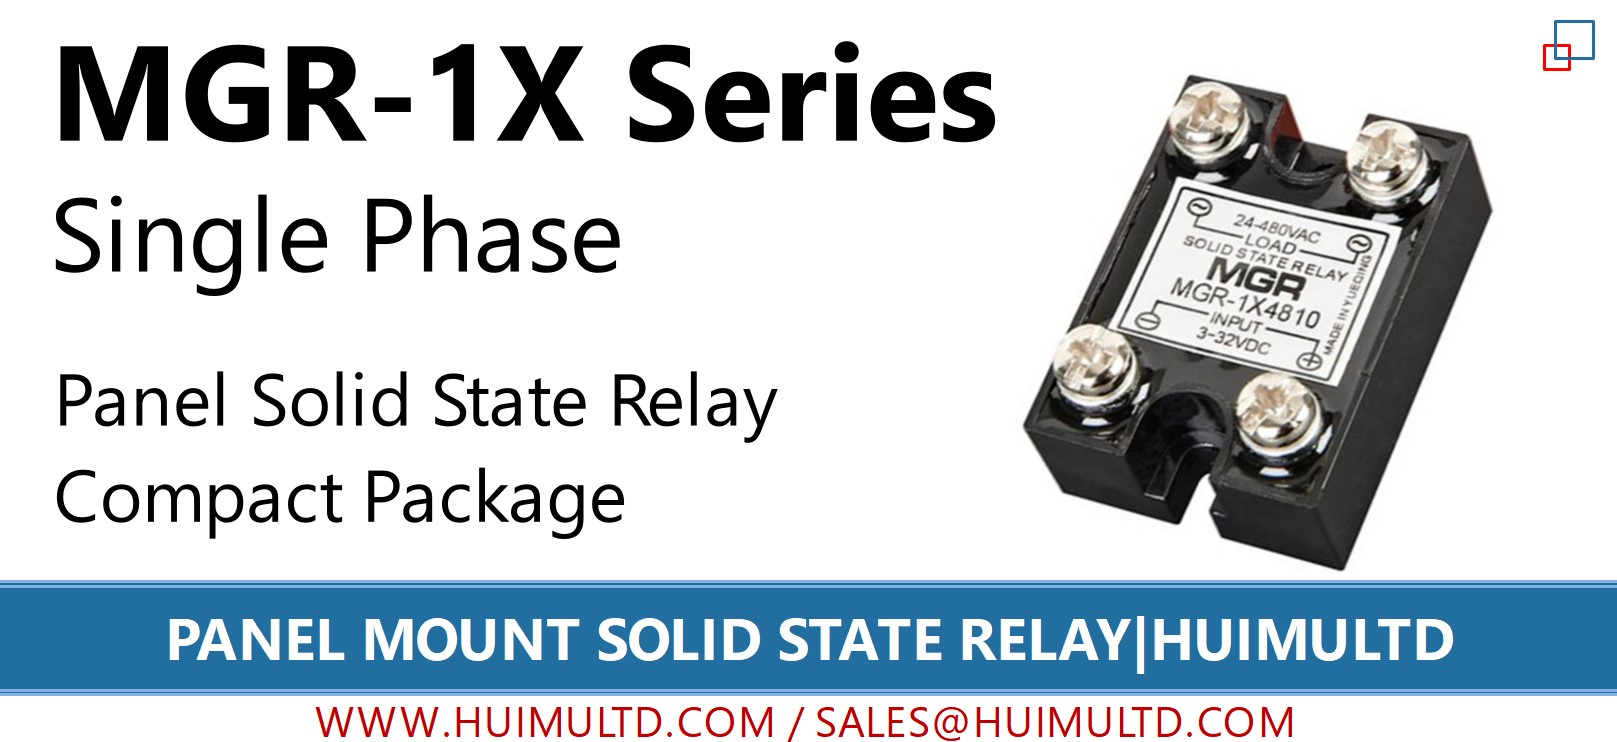 MGR-1X Series Panel Mount Solid State Relay